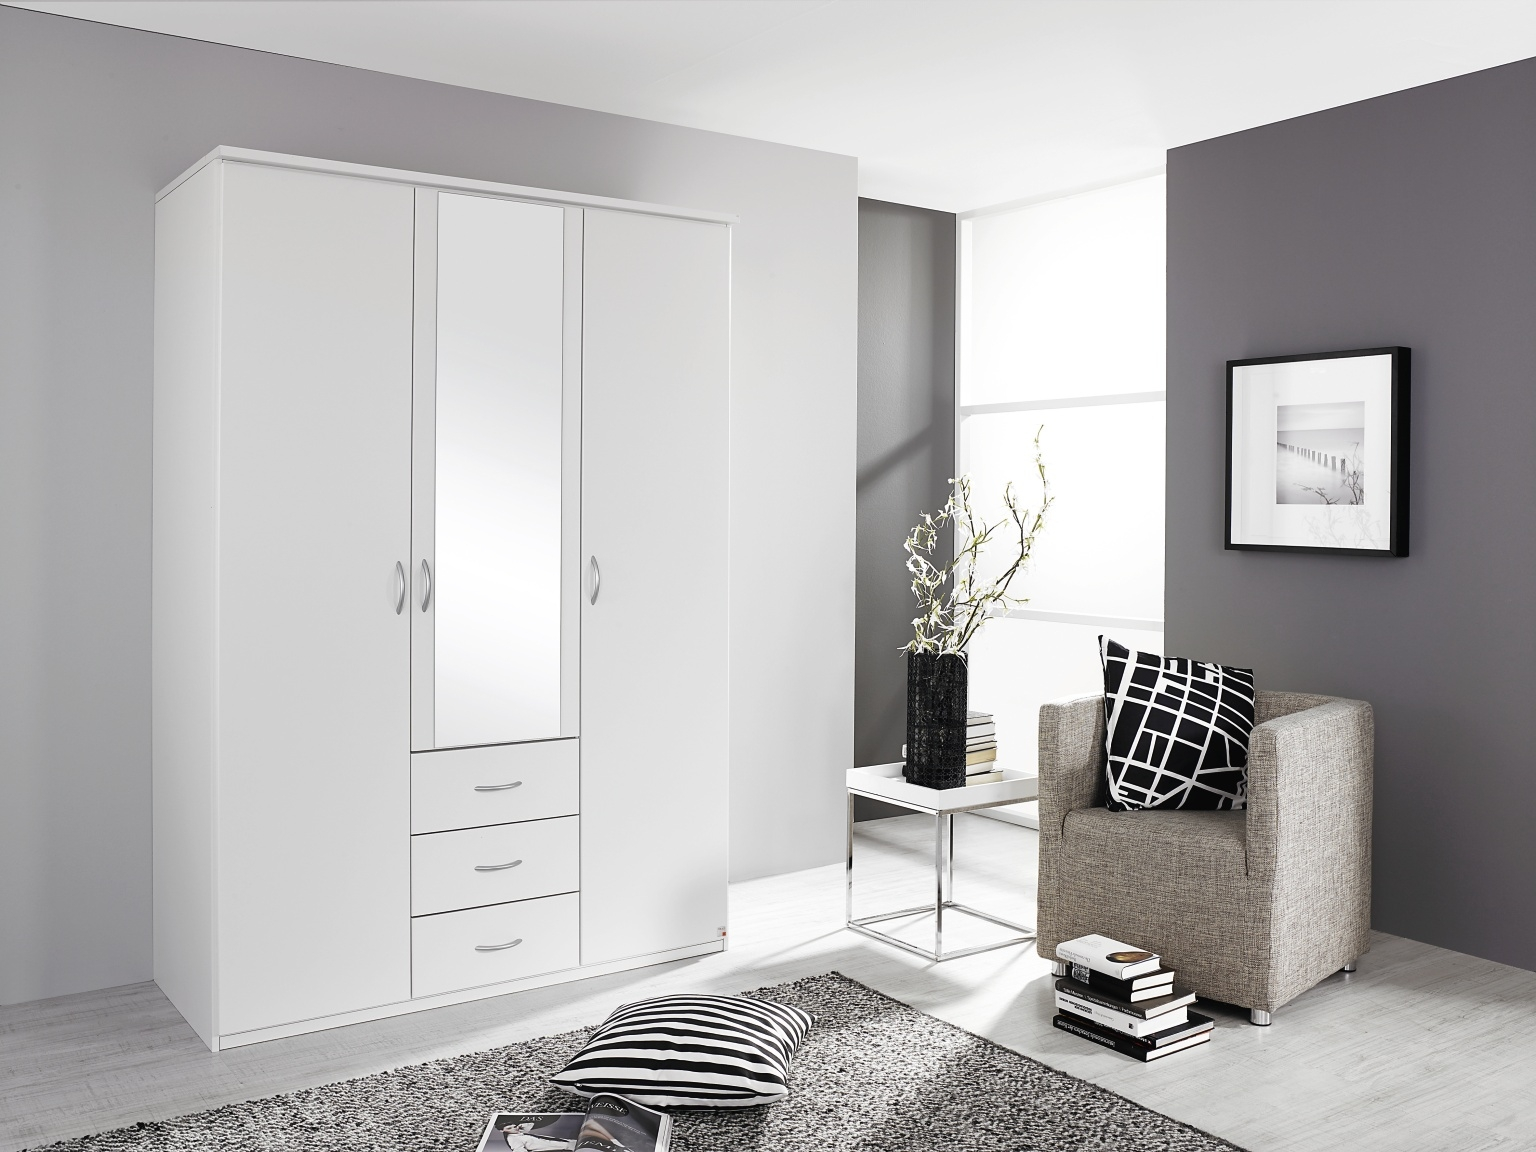 Rauch Blitz Alpine White 4 Door 3 Drawer Combi Wardrobe with 2 Mirrors